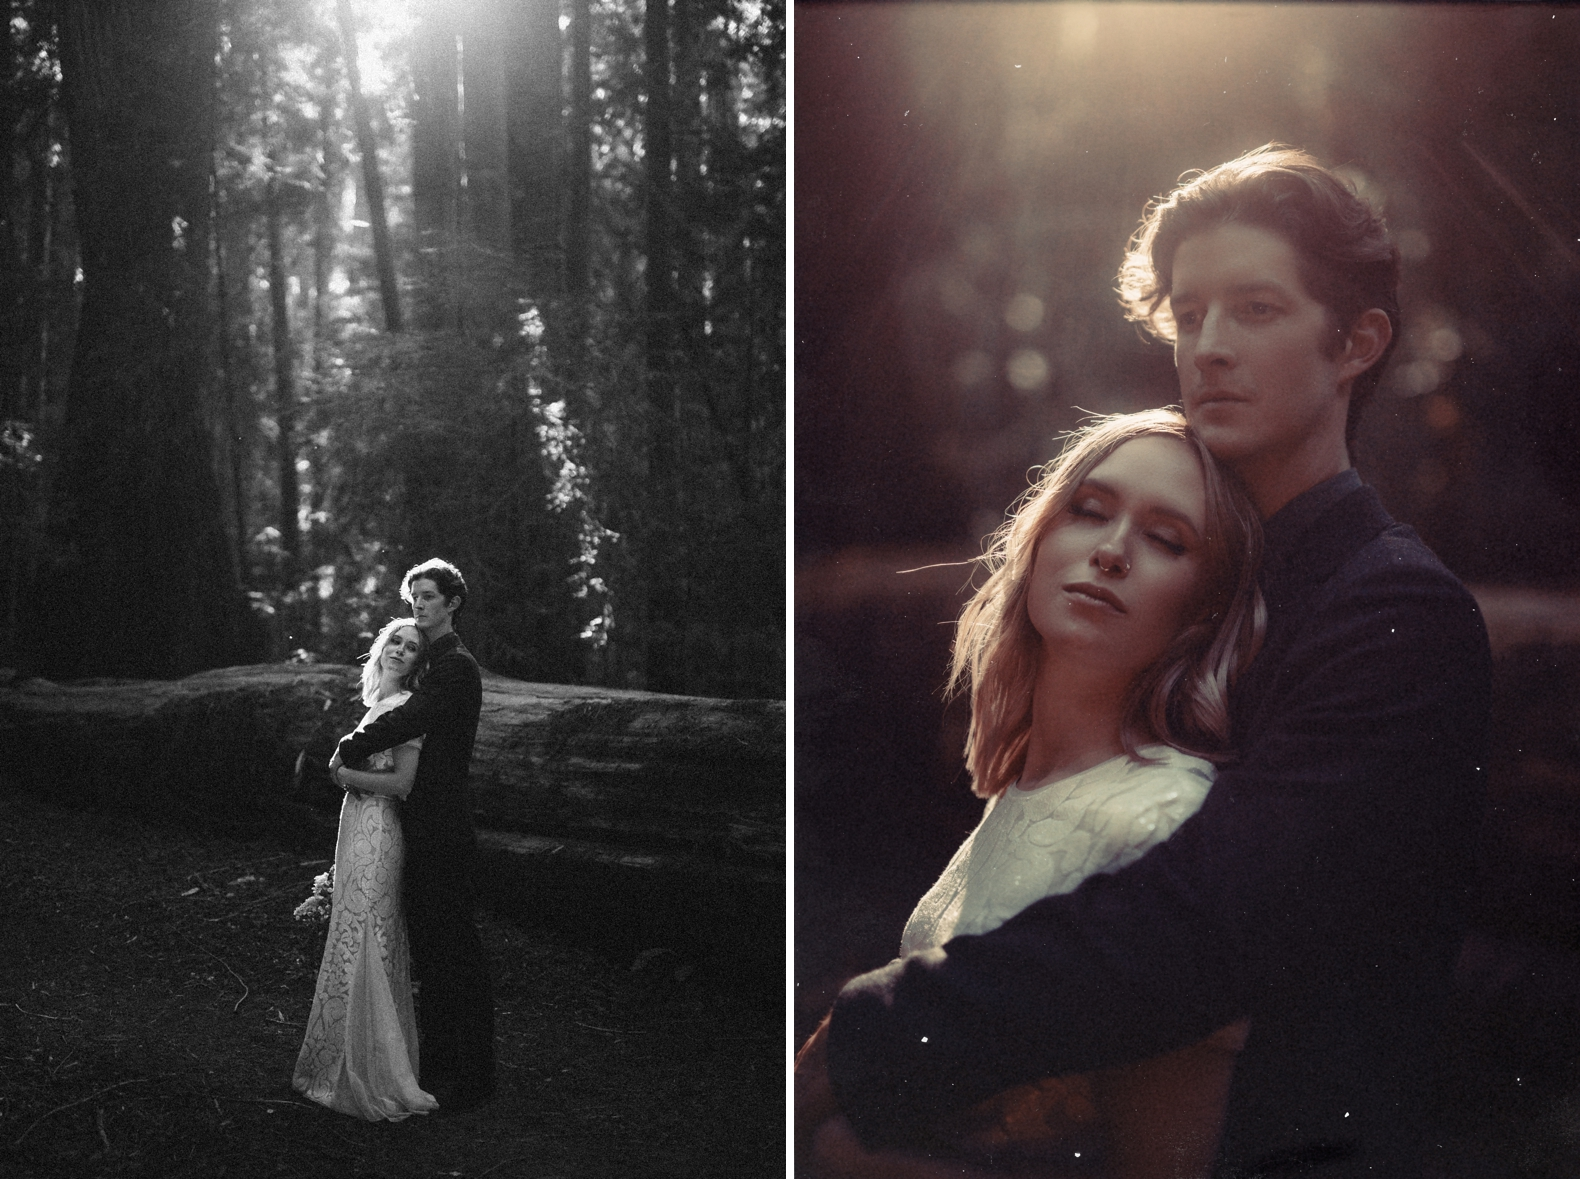 redwood-forest-elopement-0033